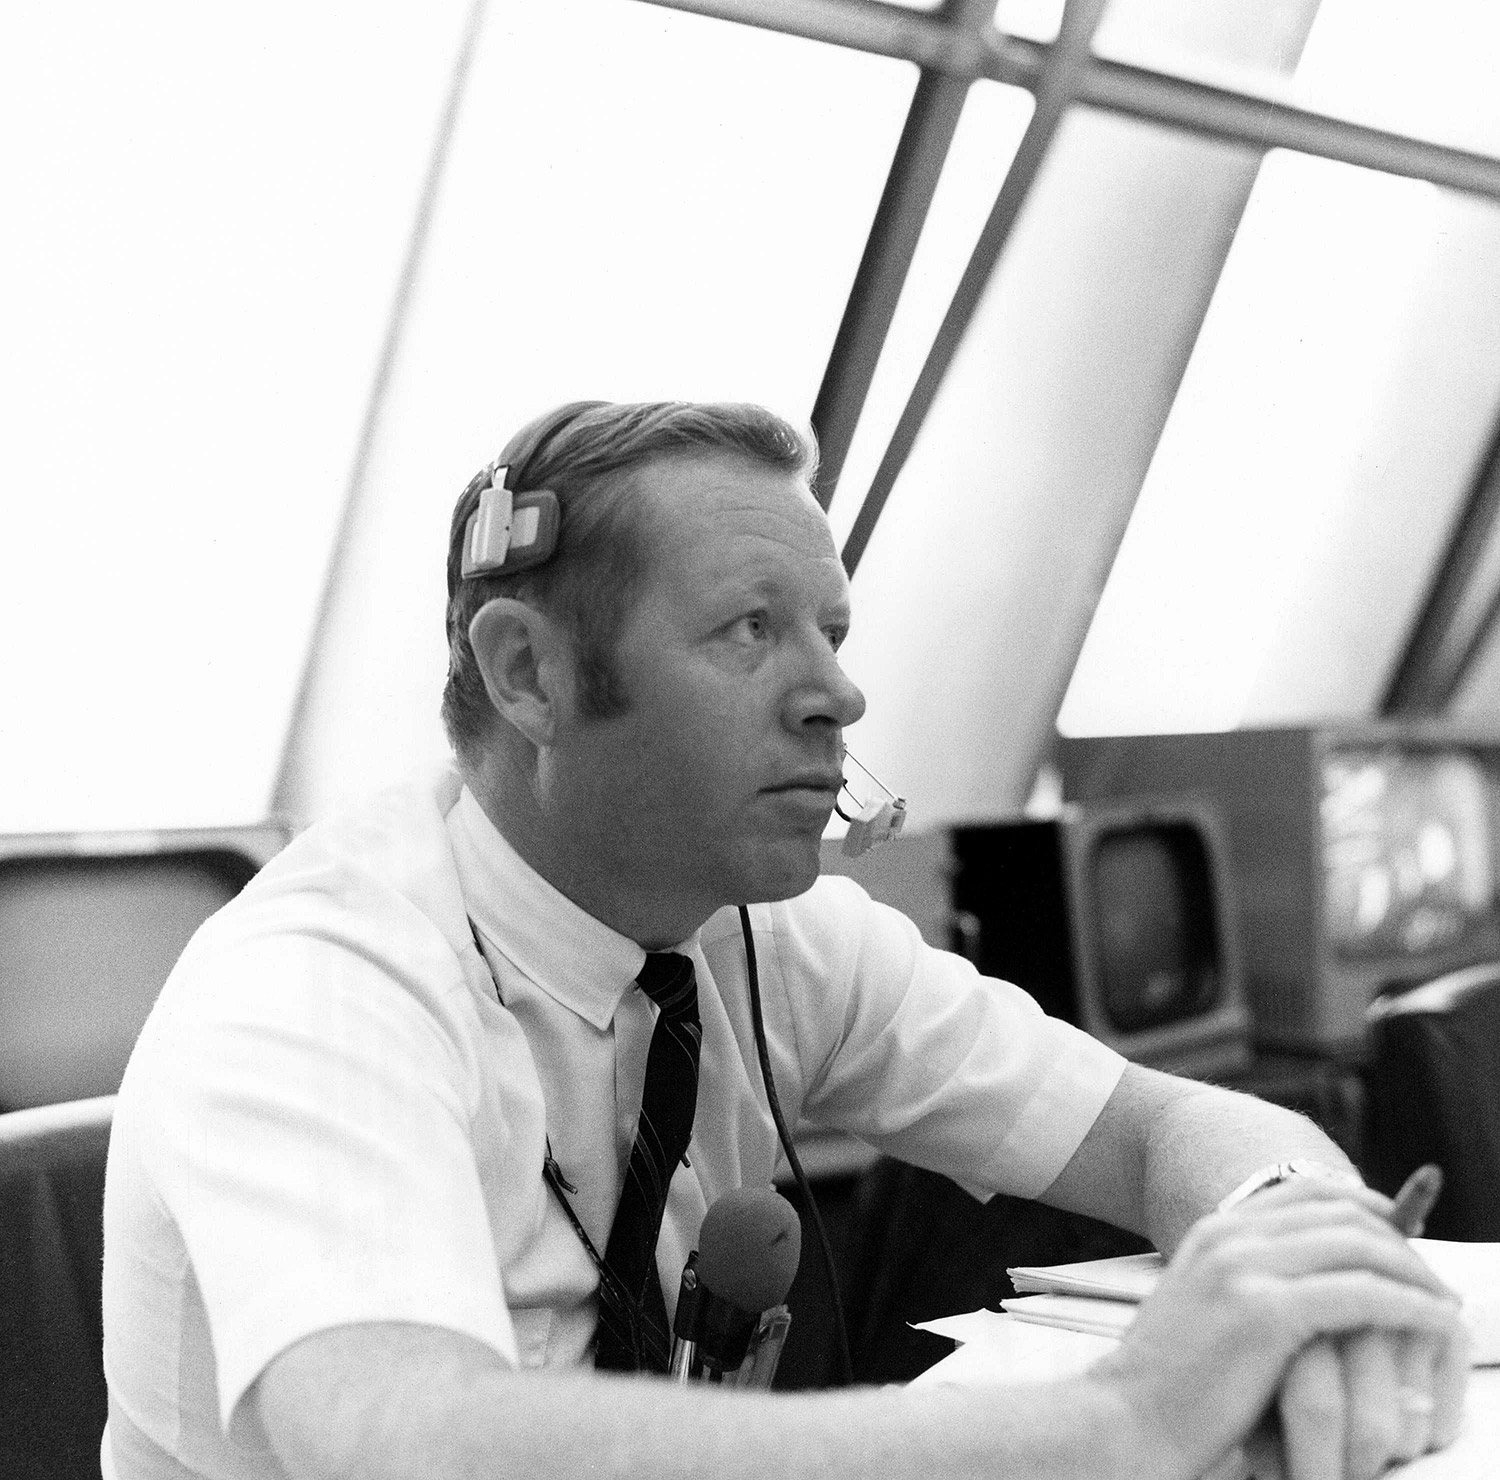 Jack King, KSC Public Affairs Apollo Launch Commentator, follows proceedings of the wet portion of the Countdown Demonstration Test for Apollo 12 from his console within Firing Room 2 of the Launch Control Center. Credit: NASA via Retro Space Images